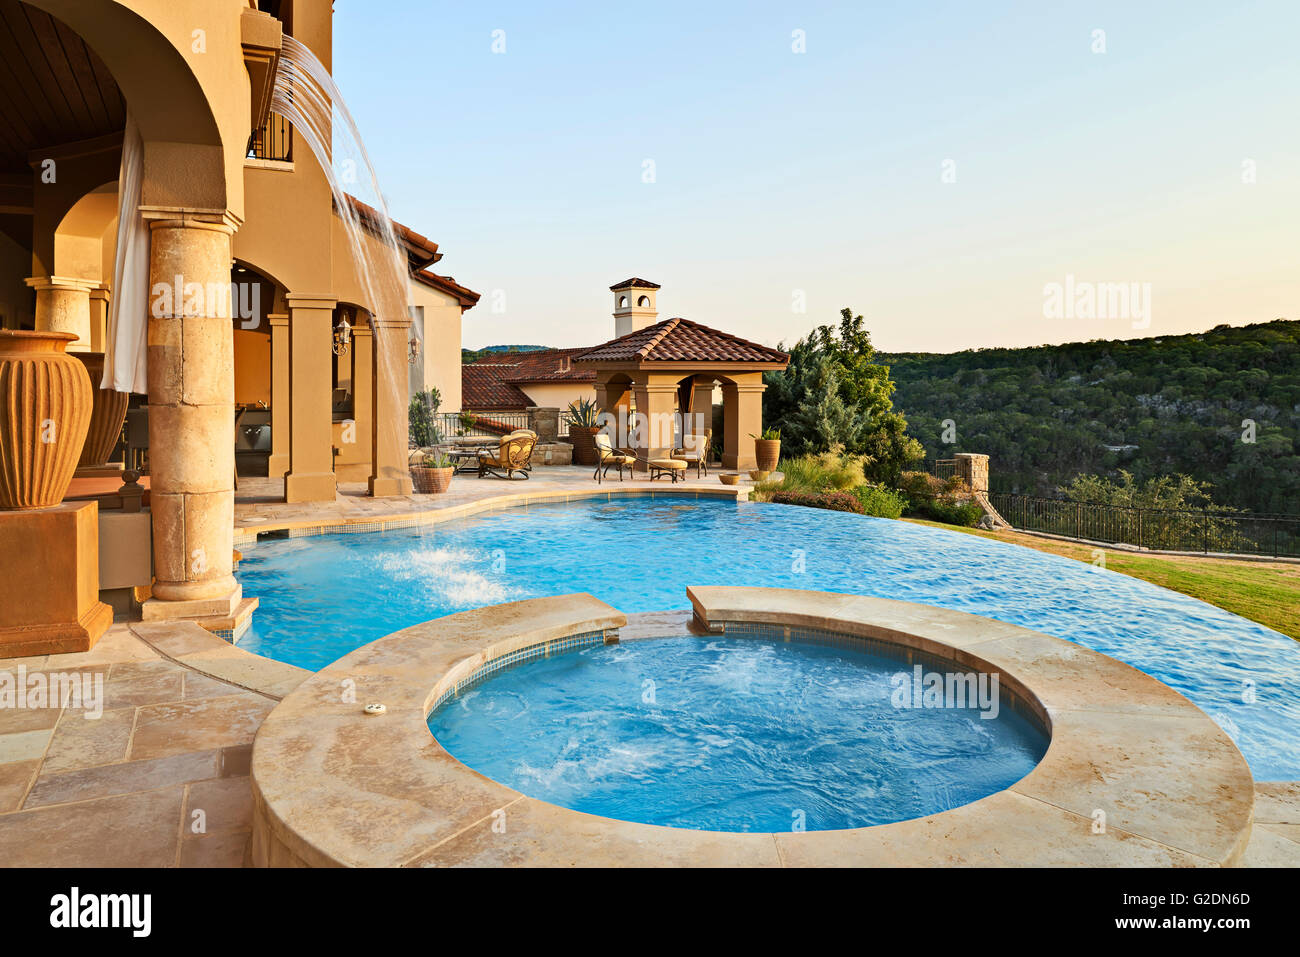 Swimming Pool at Upscale House - Stock Image